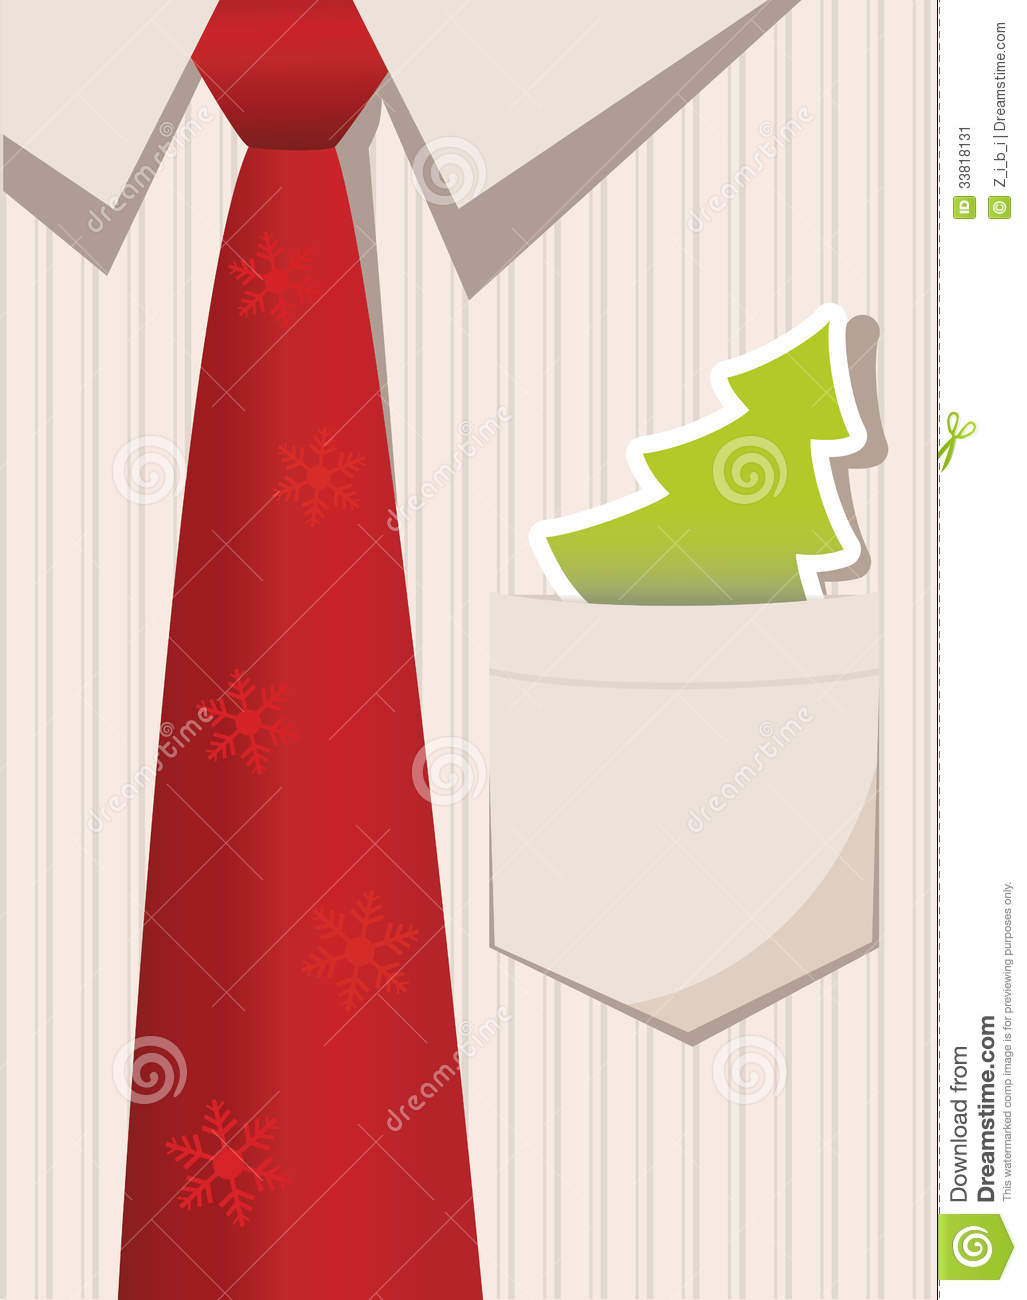 Business Christmas Greeting Card Stock Vector - Illustration of ...